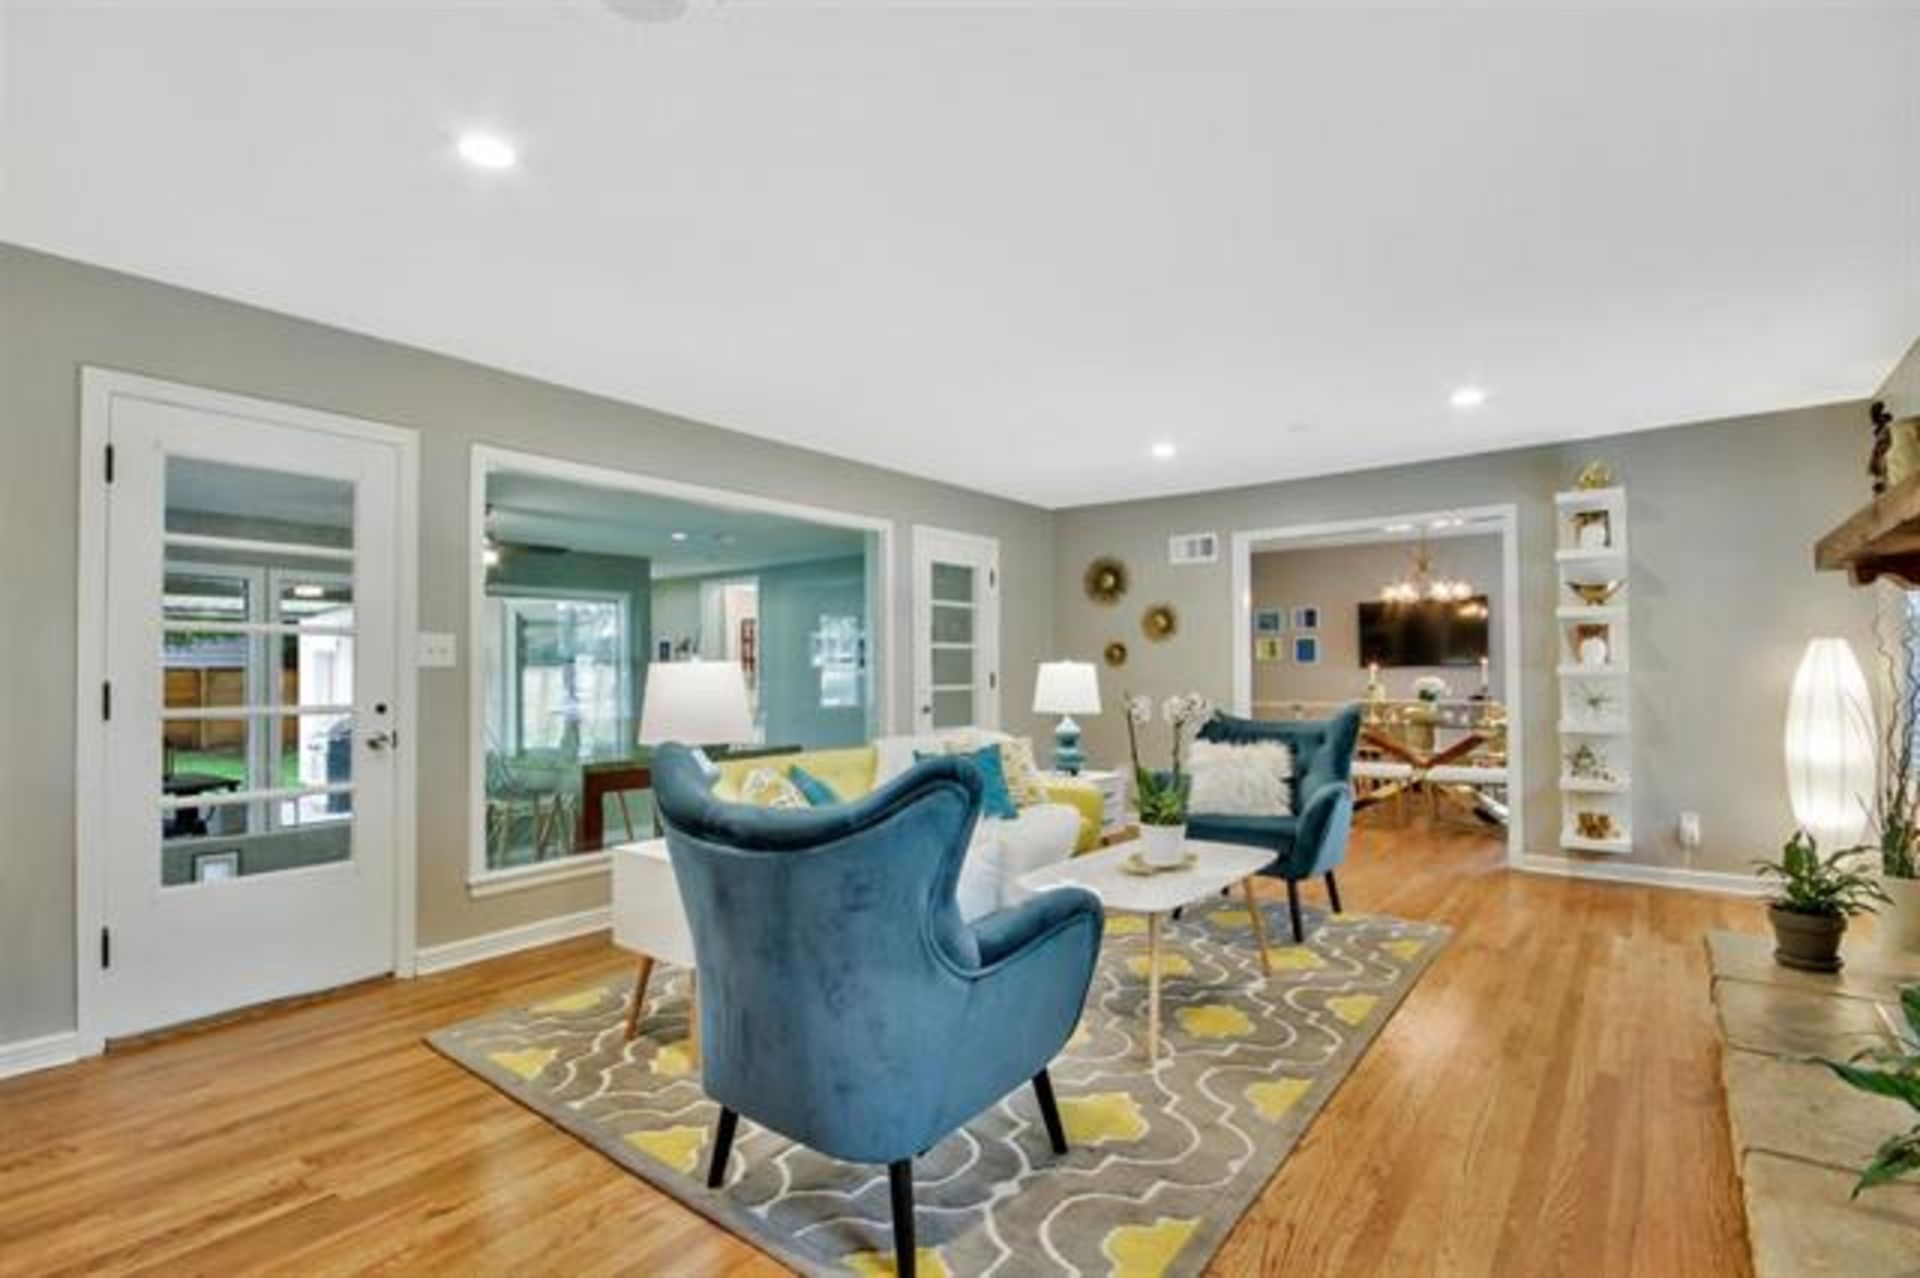 Is Your Home Staging a #PinterestFail?